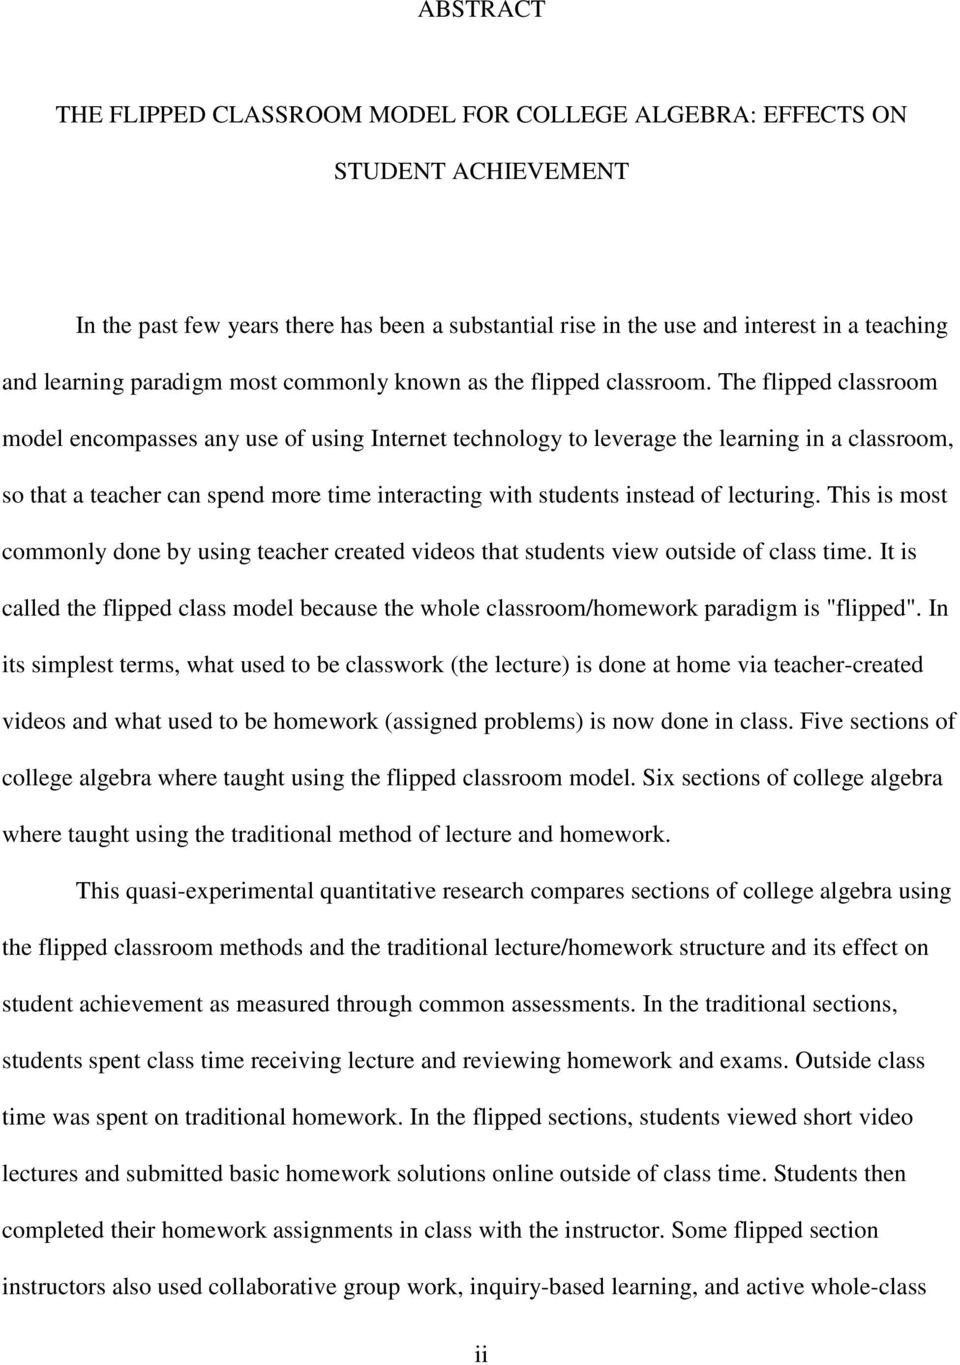 The flipped classroom model encompasses any use of using Internet technology to leverage the learning in a classroom, so that a teacher can spend more time interacting with students instead of